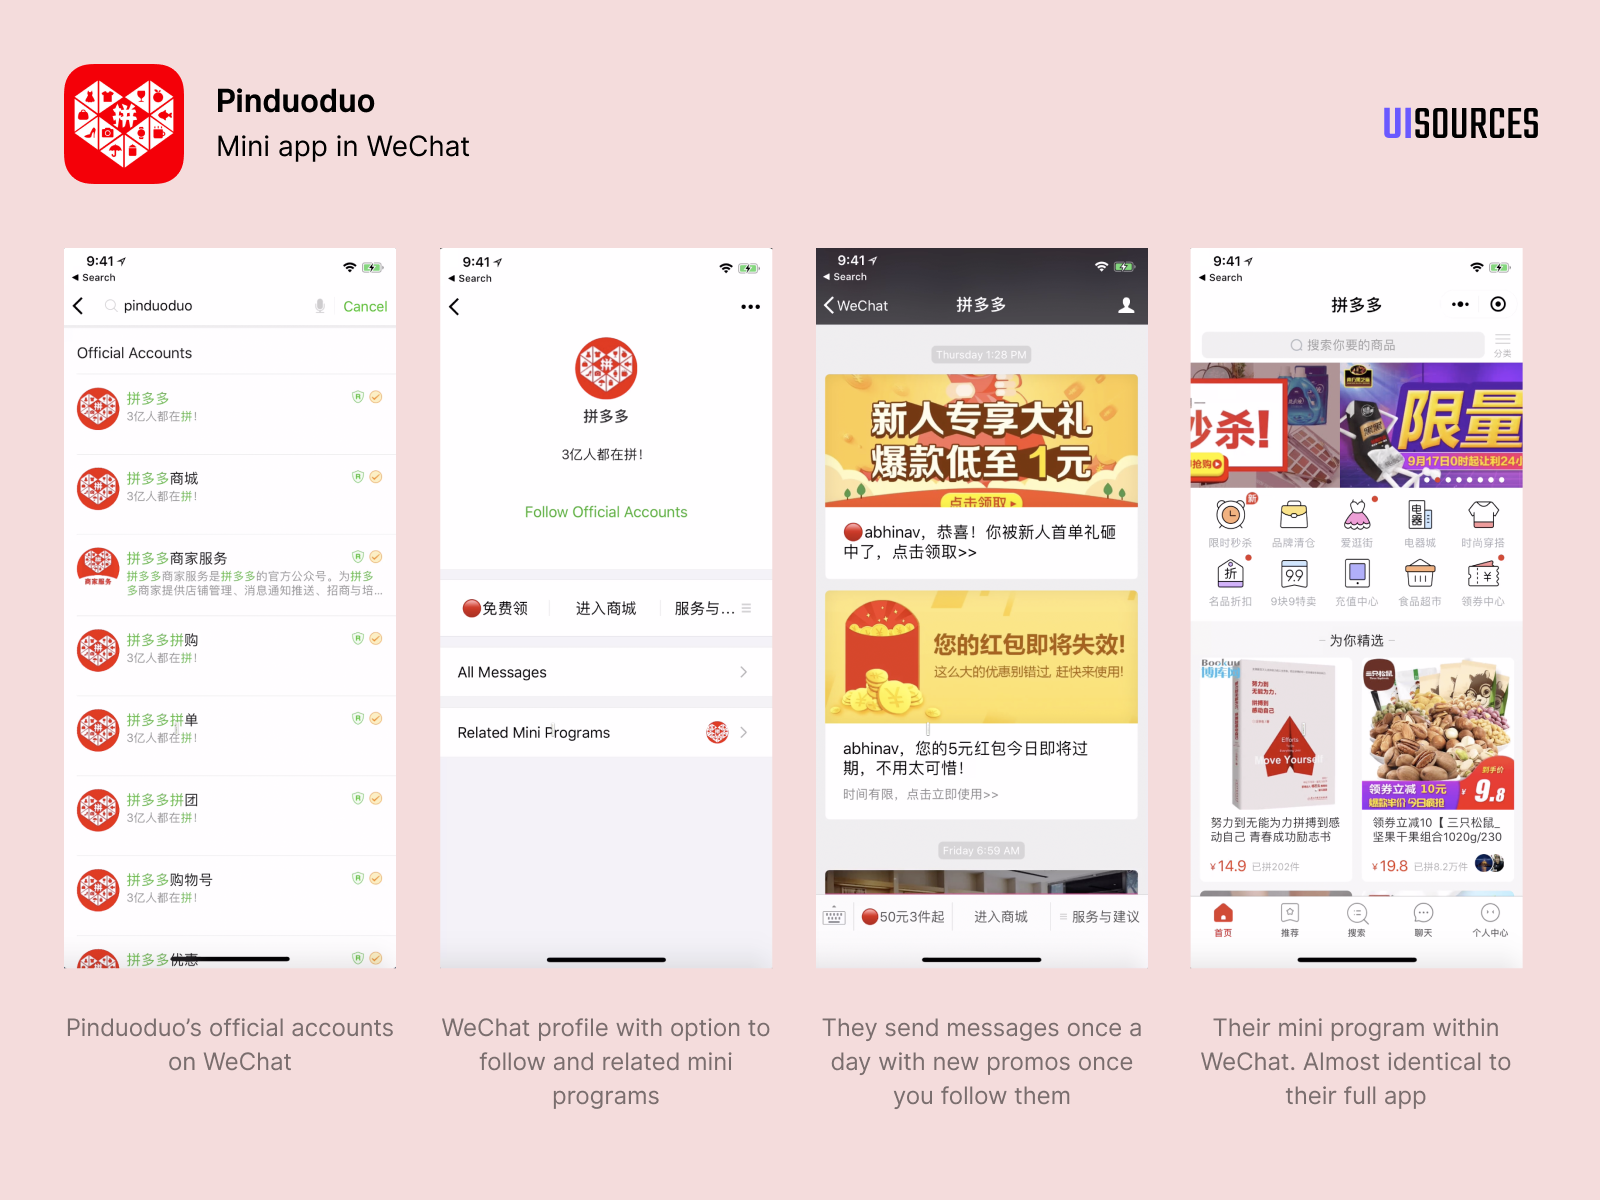 Pinduoduo (拼多多) - Social and group shopping | UI Sources